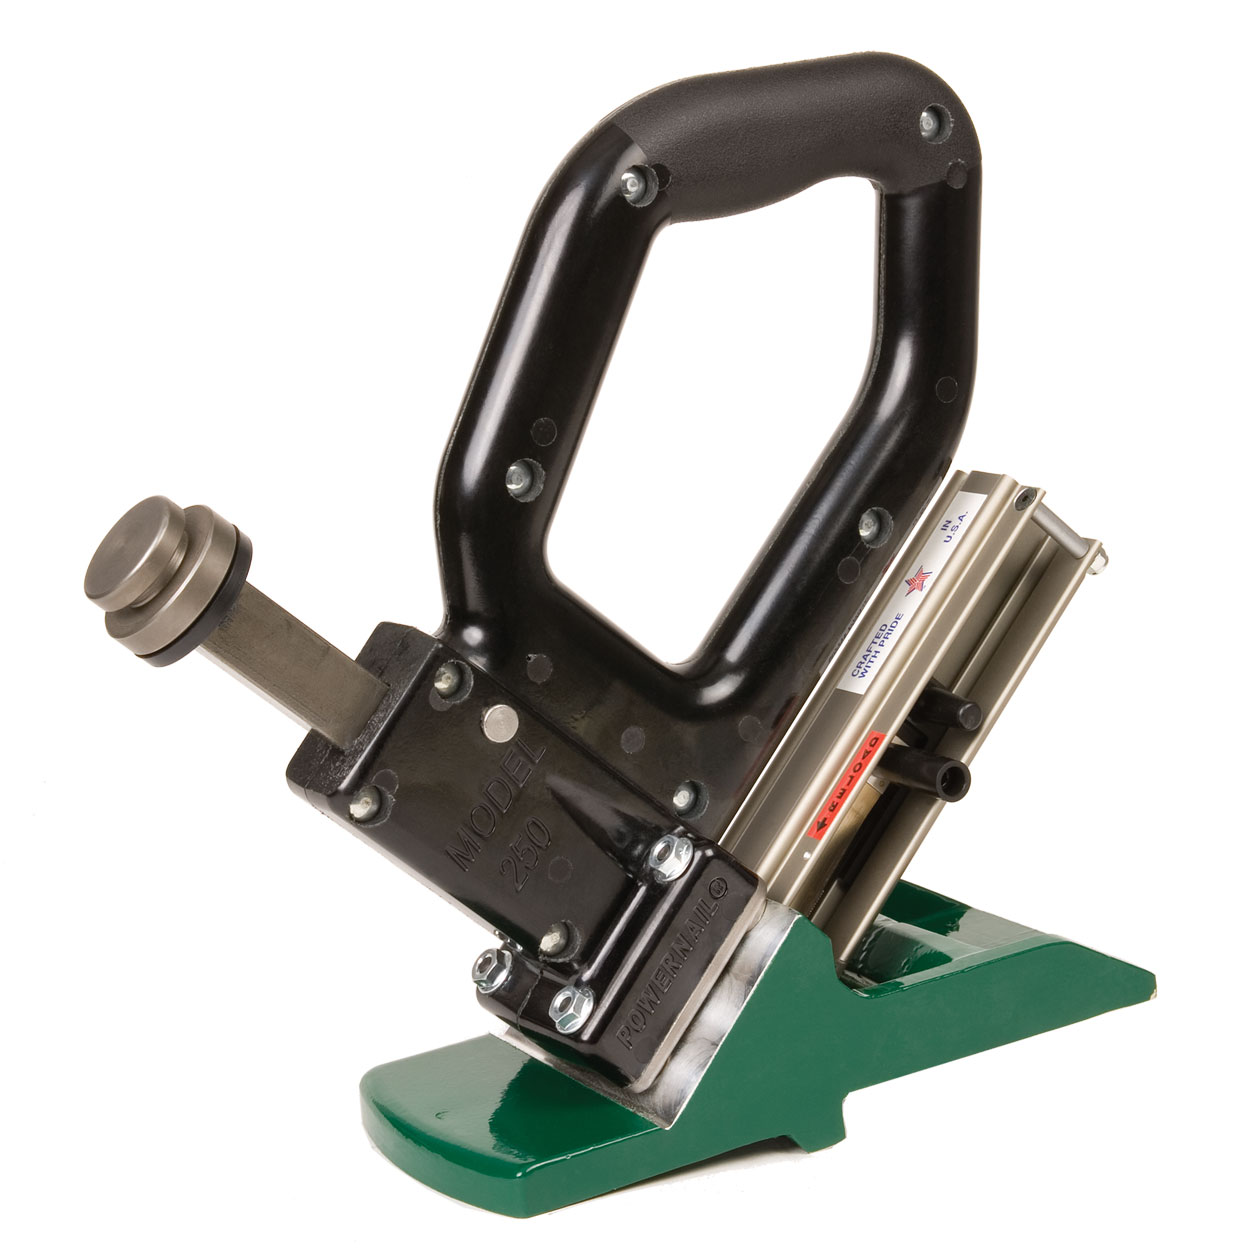 250 – Manual 20-Gauge Flooring Nailer